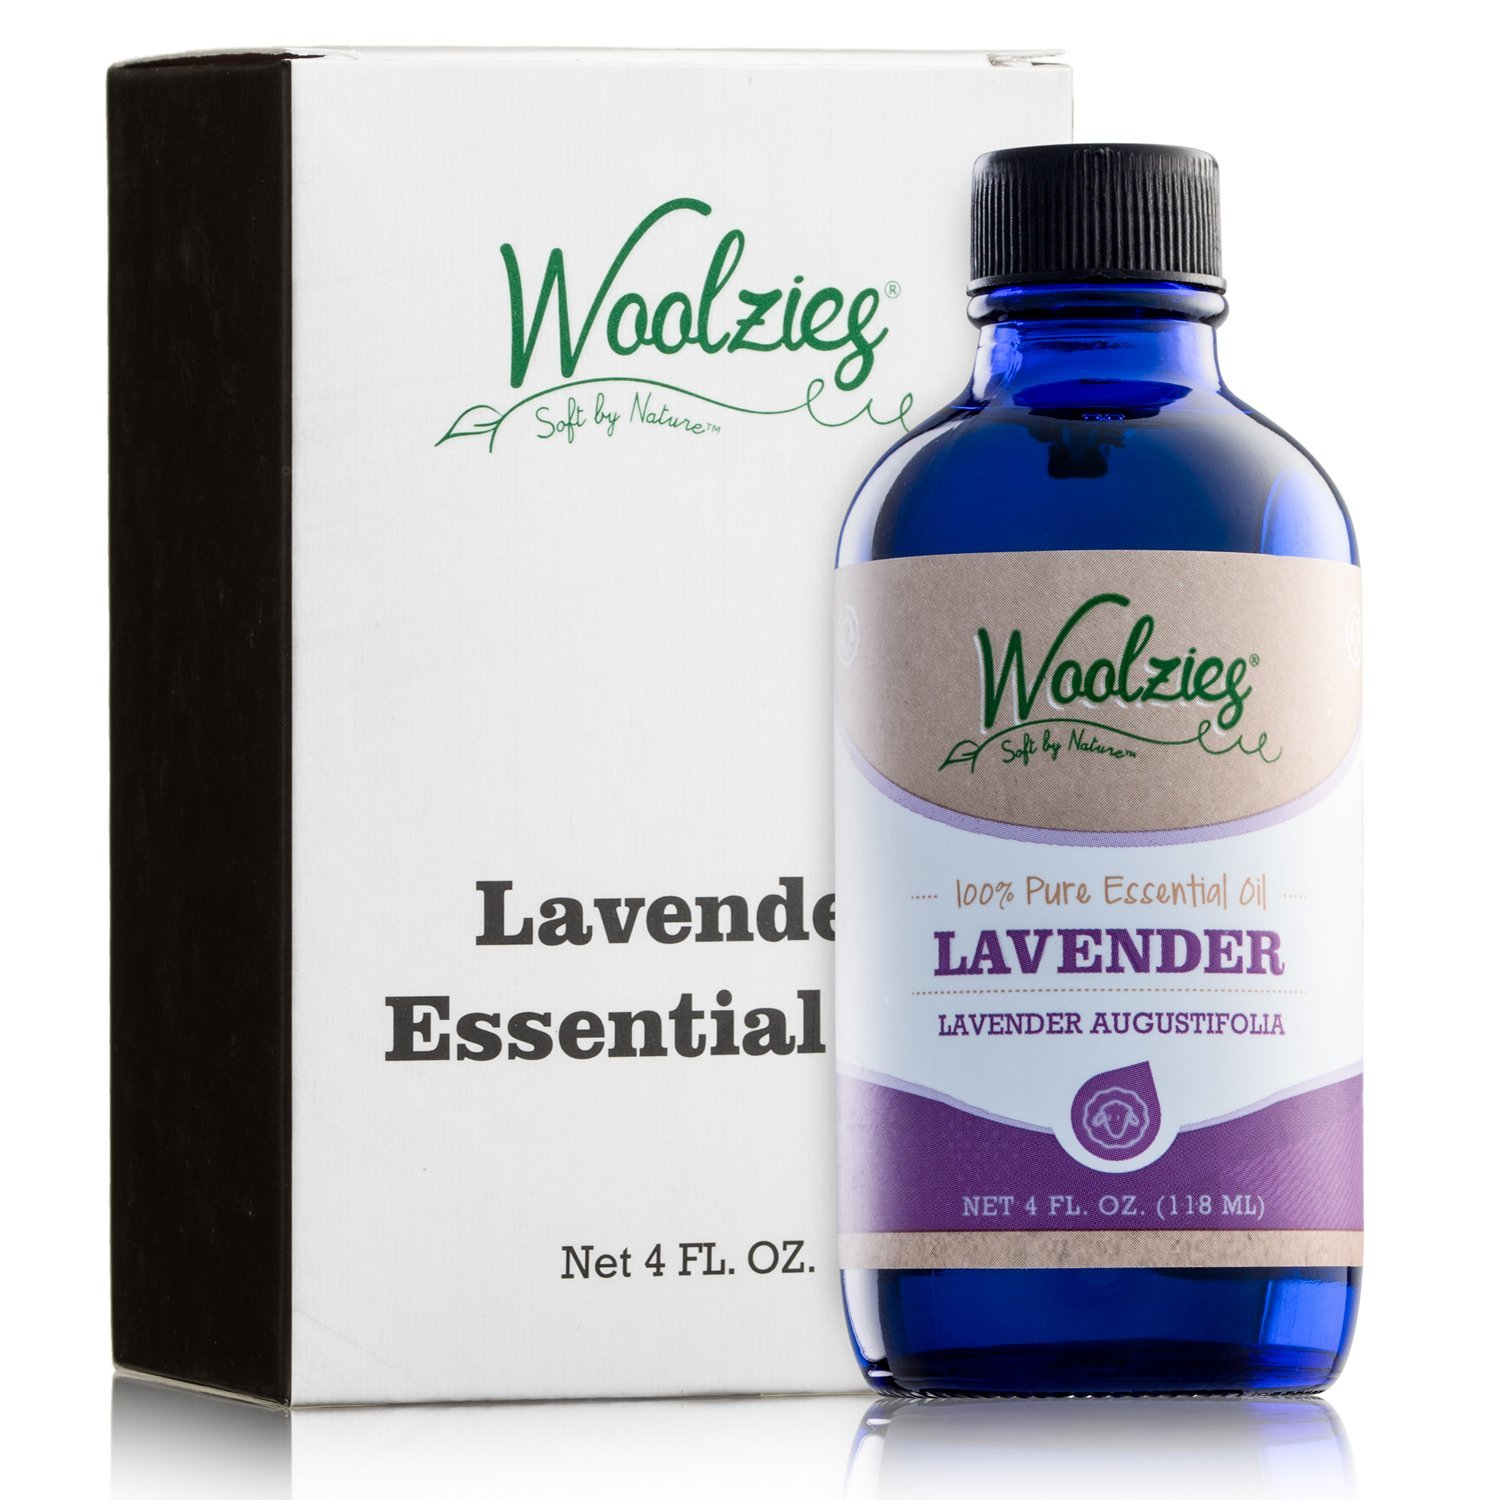 Woolzies Best Quality 100 Percent Pure Lavender Essential Oil Therapeutic Grade, Aroma Therapy Oil